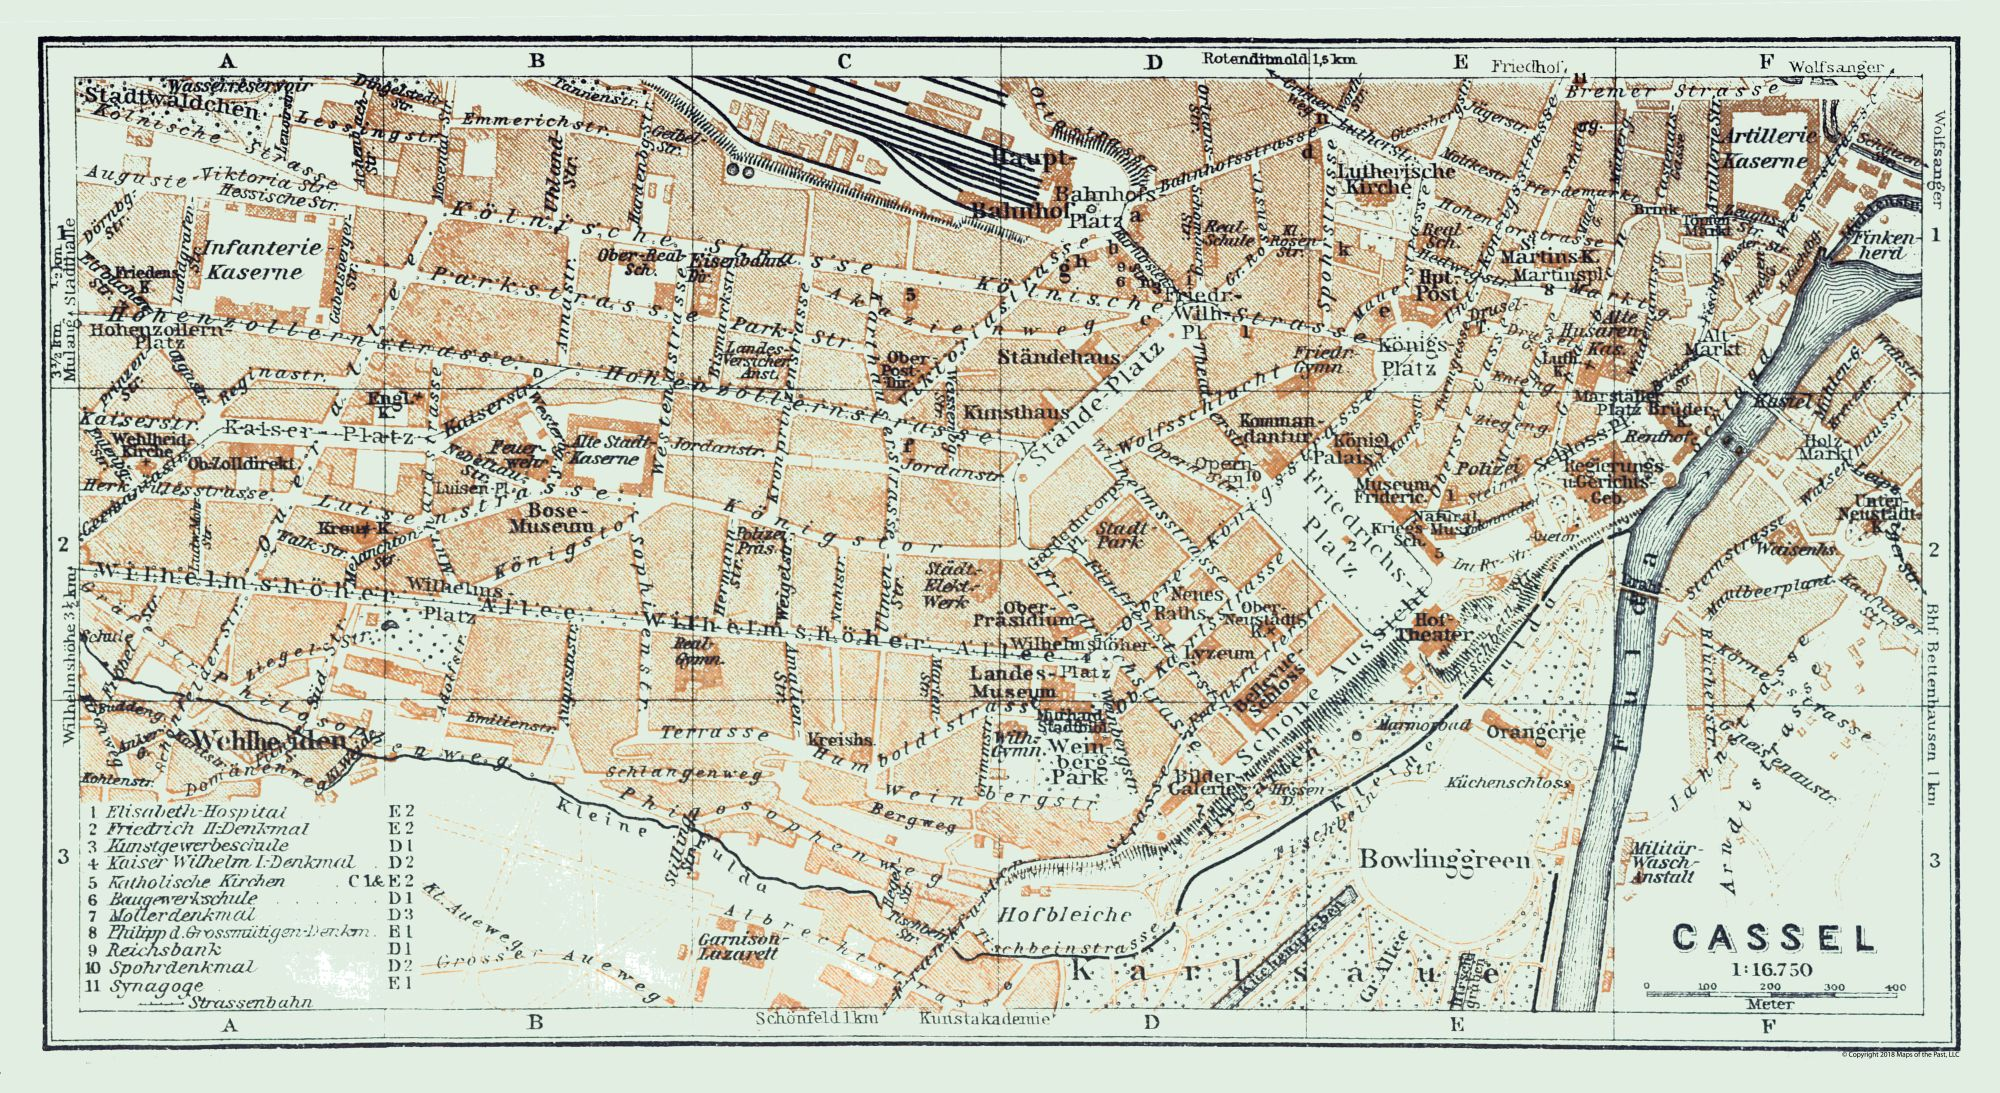 Map Of Germany In 1914.Old International Maps Kassel Germany Baedeker 1914 42 09 X 23